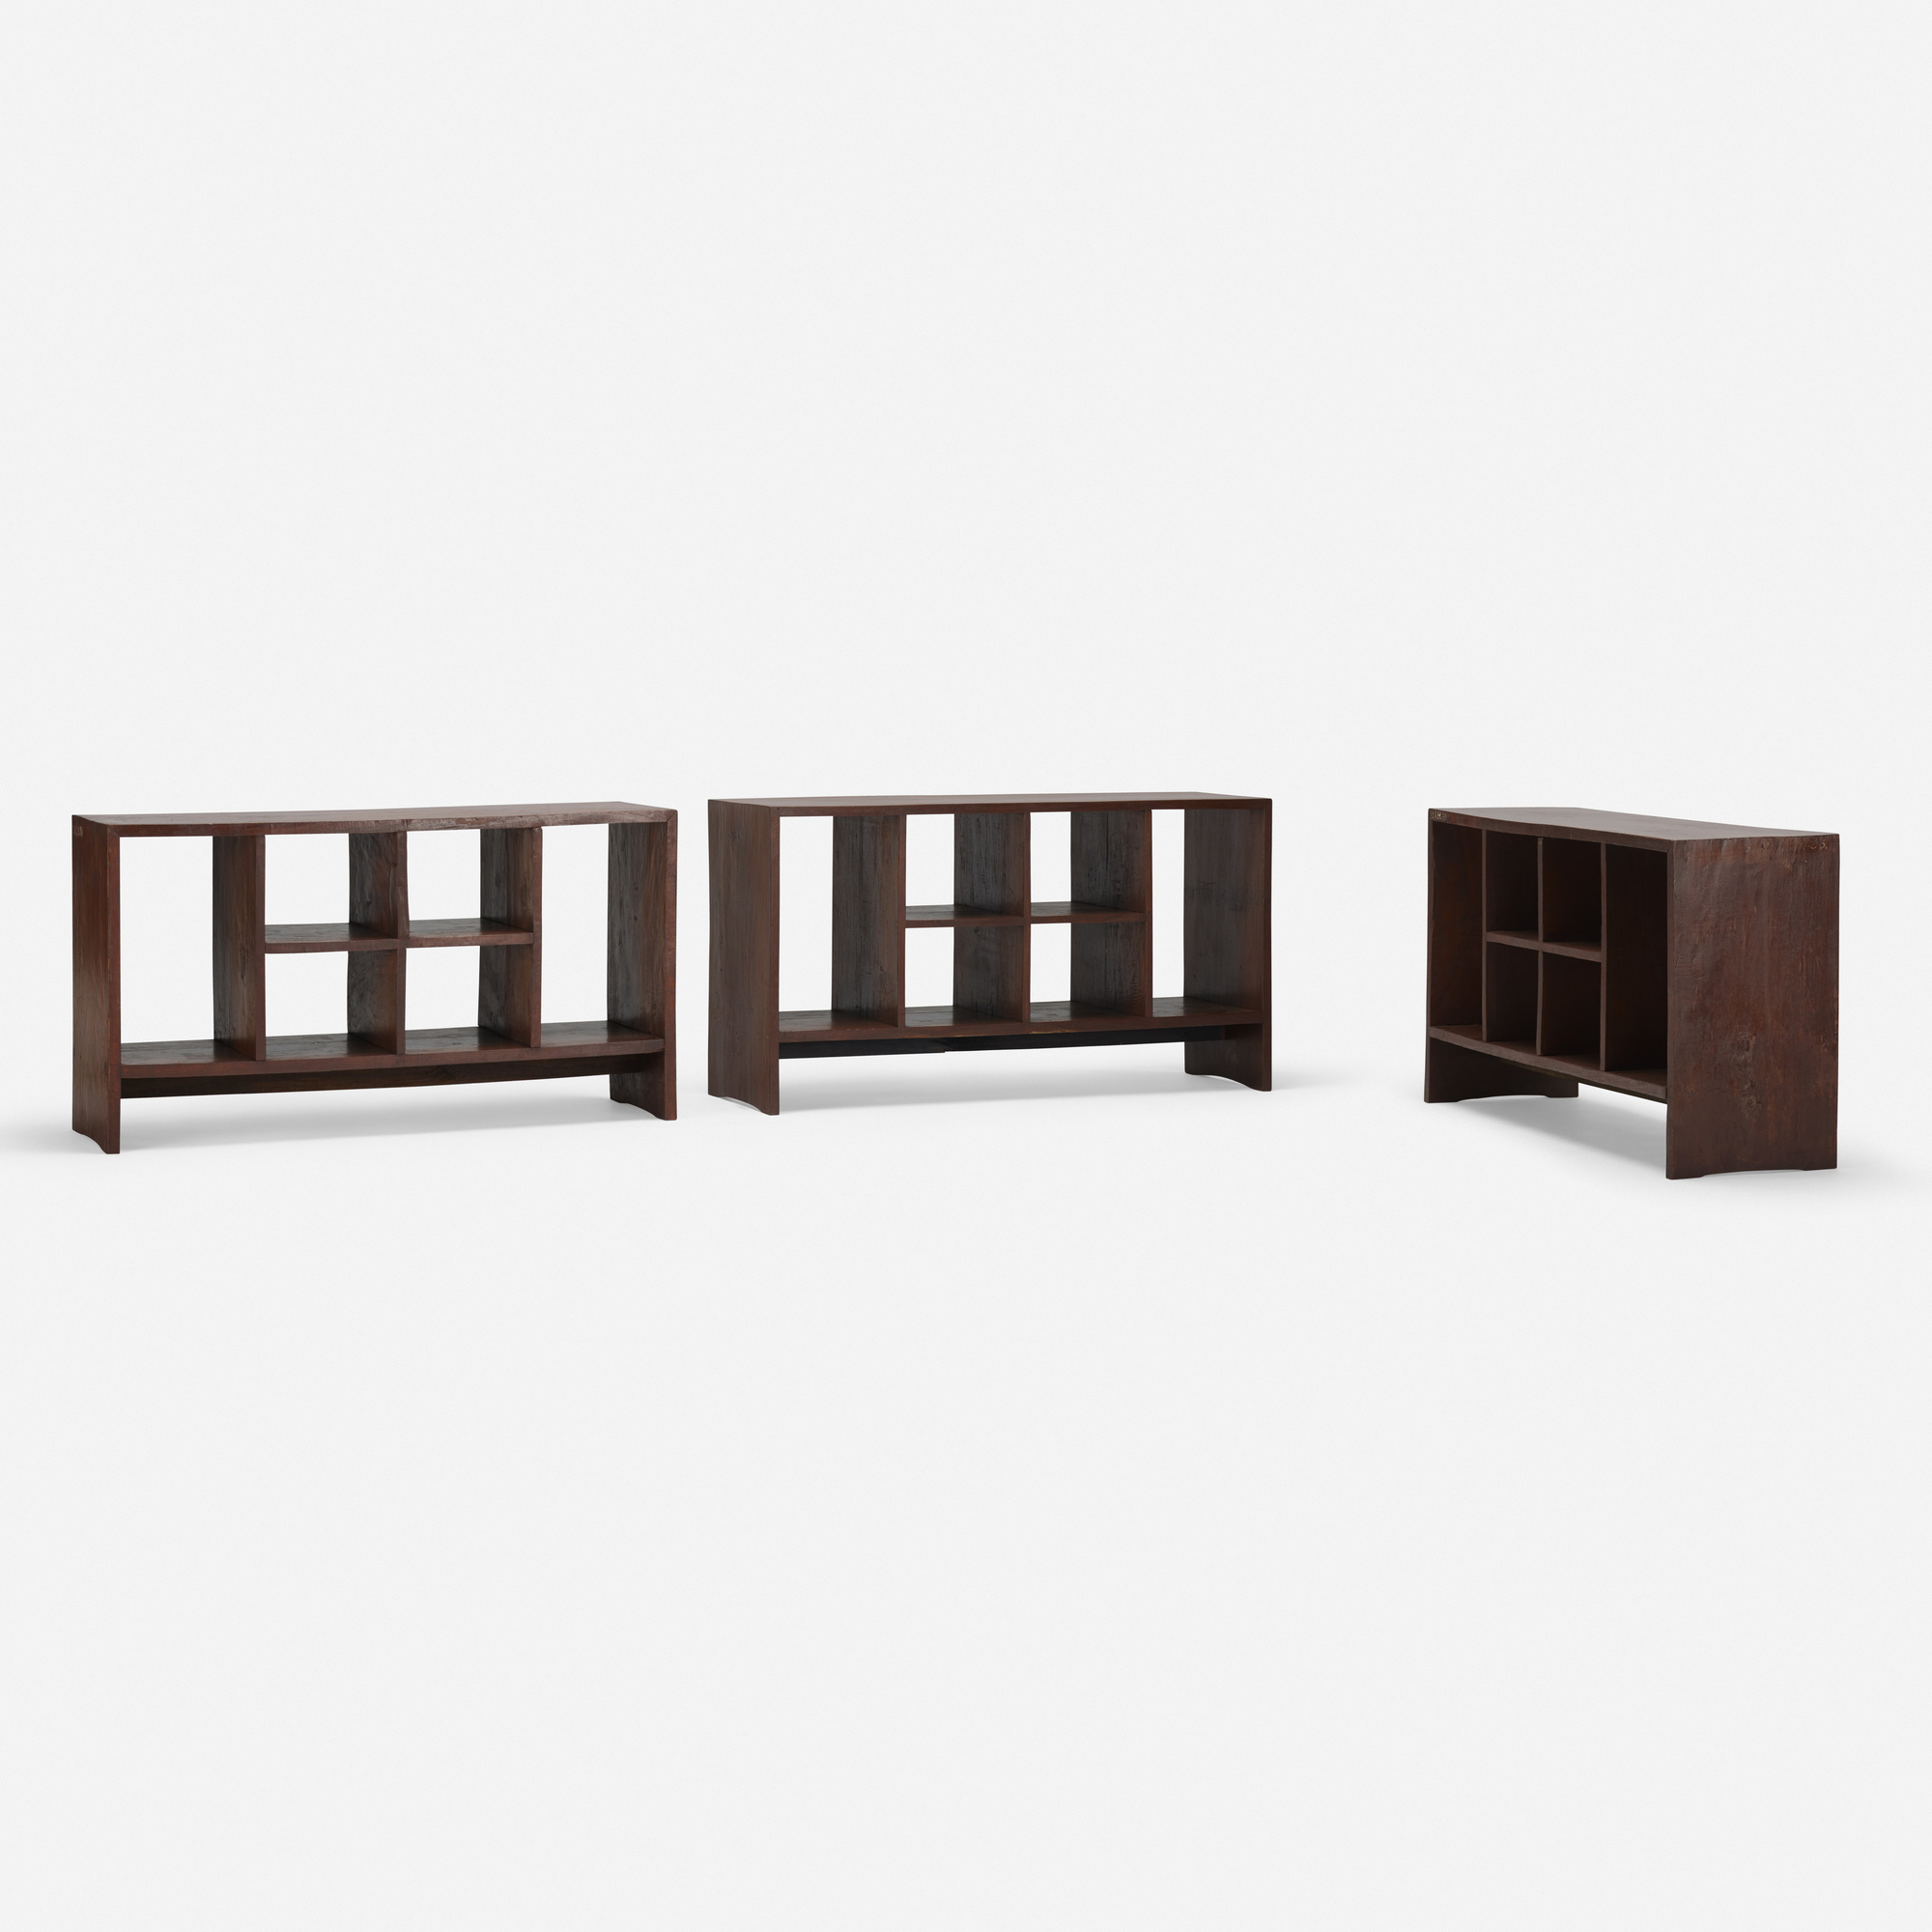 235: PIERRE JEANNERET, set of three file racks from the